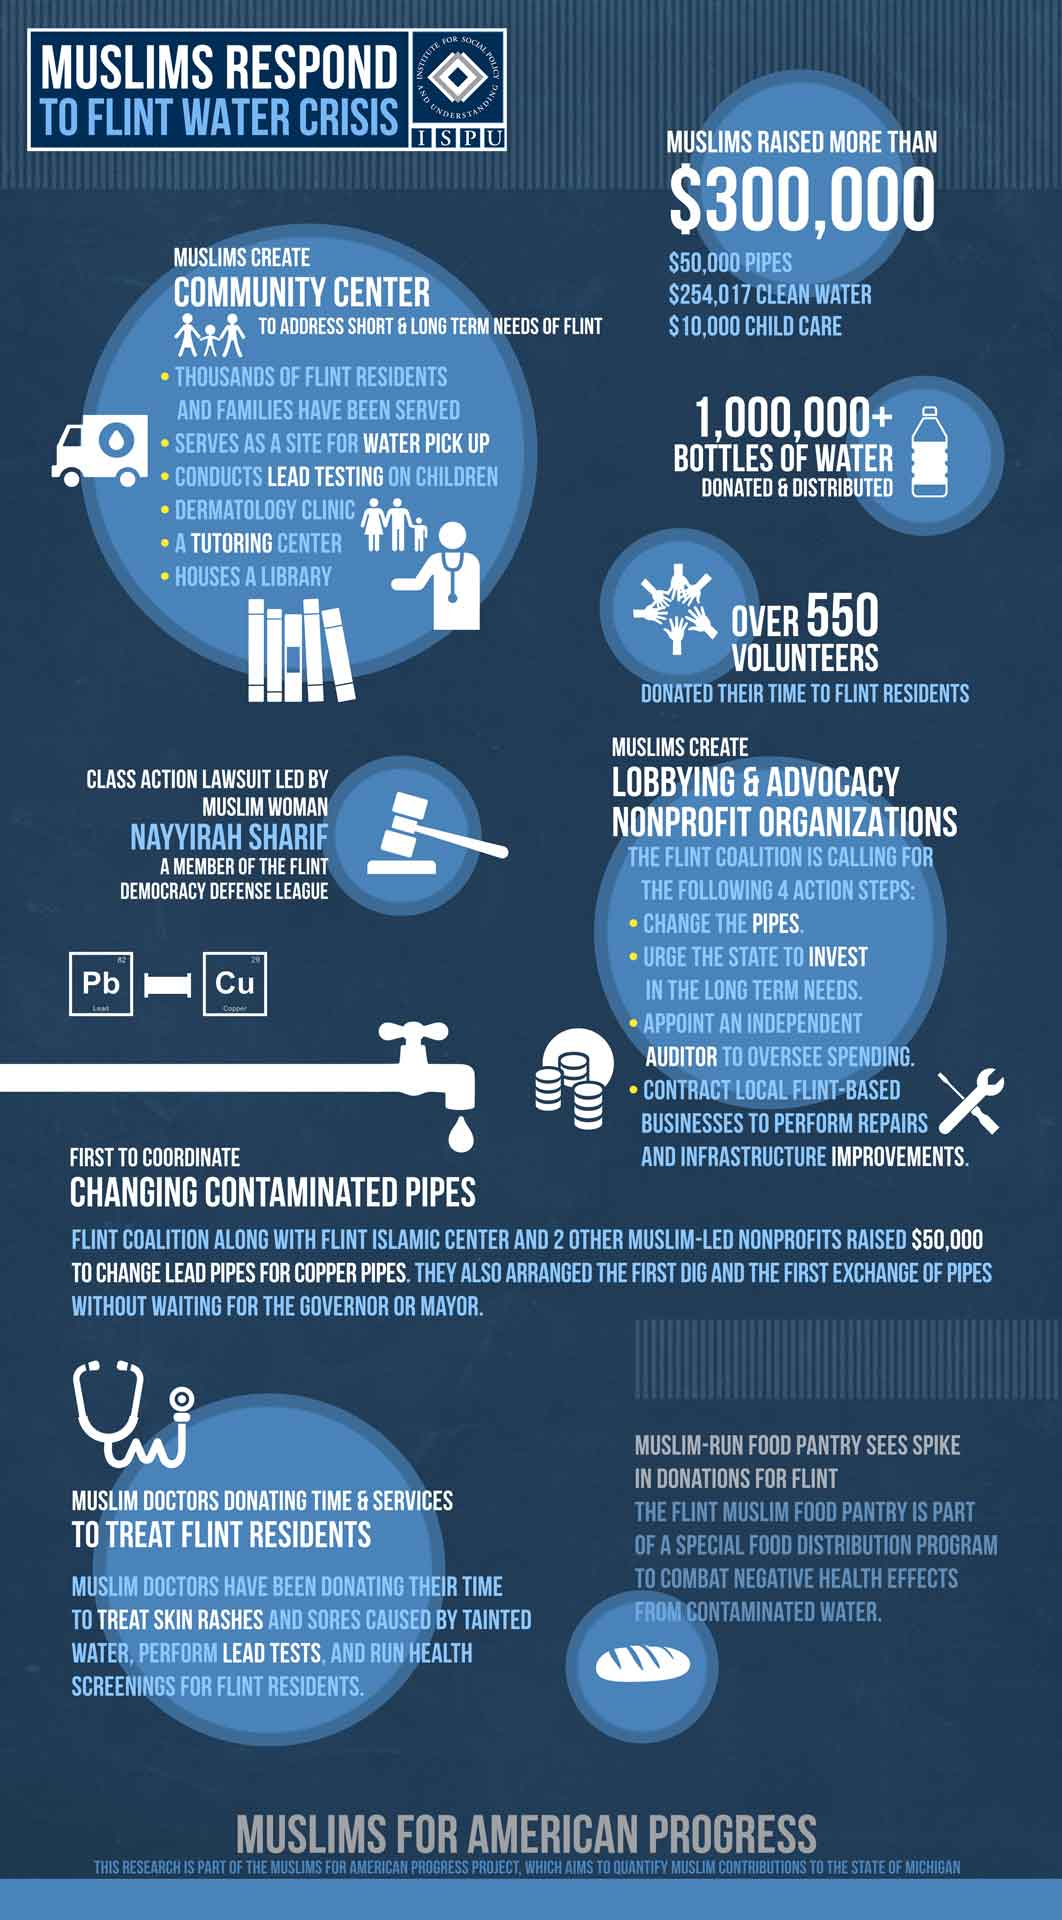 Infographic showing how Muslims responded to the Flint water crisis. Muslims raised more than $300,000. Muslims created a community center to address short and long term needs of Flint. A Muslim woman and member of the Flint Democracy Defense League, Nayyirah Sharif, led a class action lawsuit. Over 550 Muslim volunteers donated their time to Flint residents. Over 1,000,000 bottles of water were donated and distributed by Muslims. Muslim doctors donated their time and services to treat Flint residents. Muslim-run food pantry saw a spike in donations for Flint.